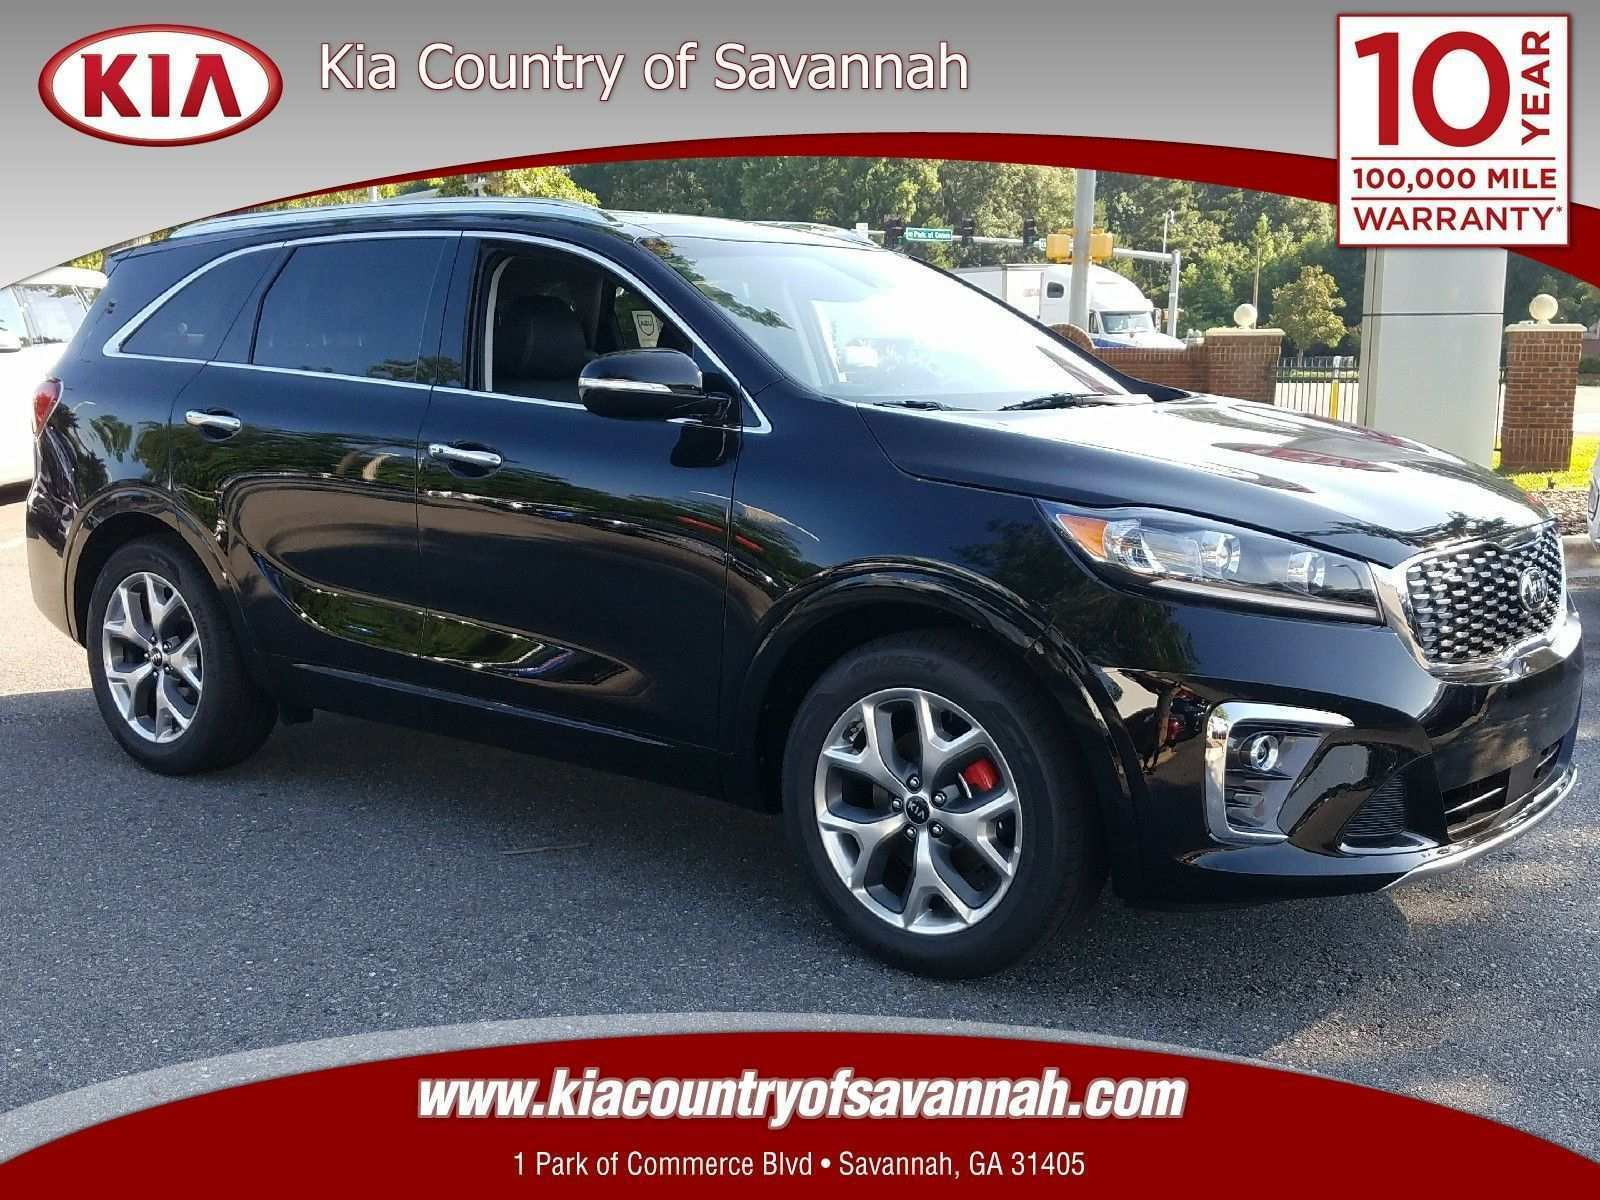 43 Best Review 2019 Kia Sorento Owners Manual Redesign and Concept for 2019 Kia Sorento Owners Manual